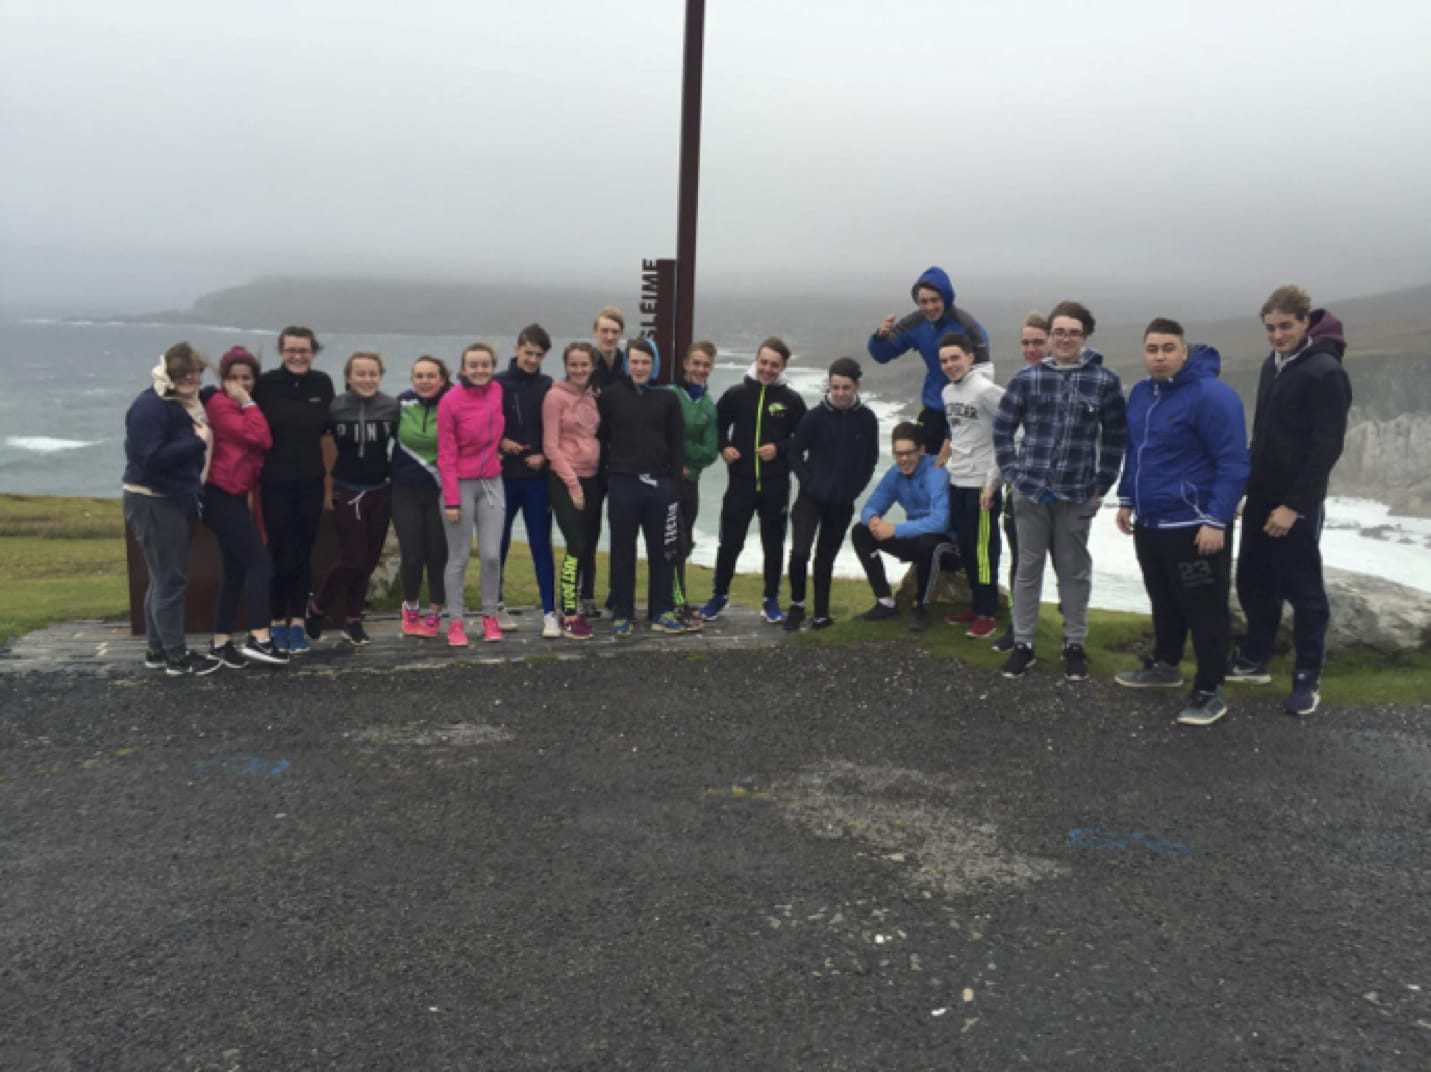 Sept 2016: Our TY class taking in the sights in Achill